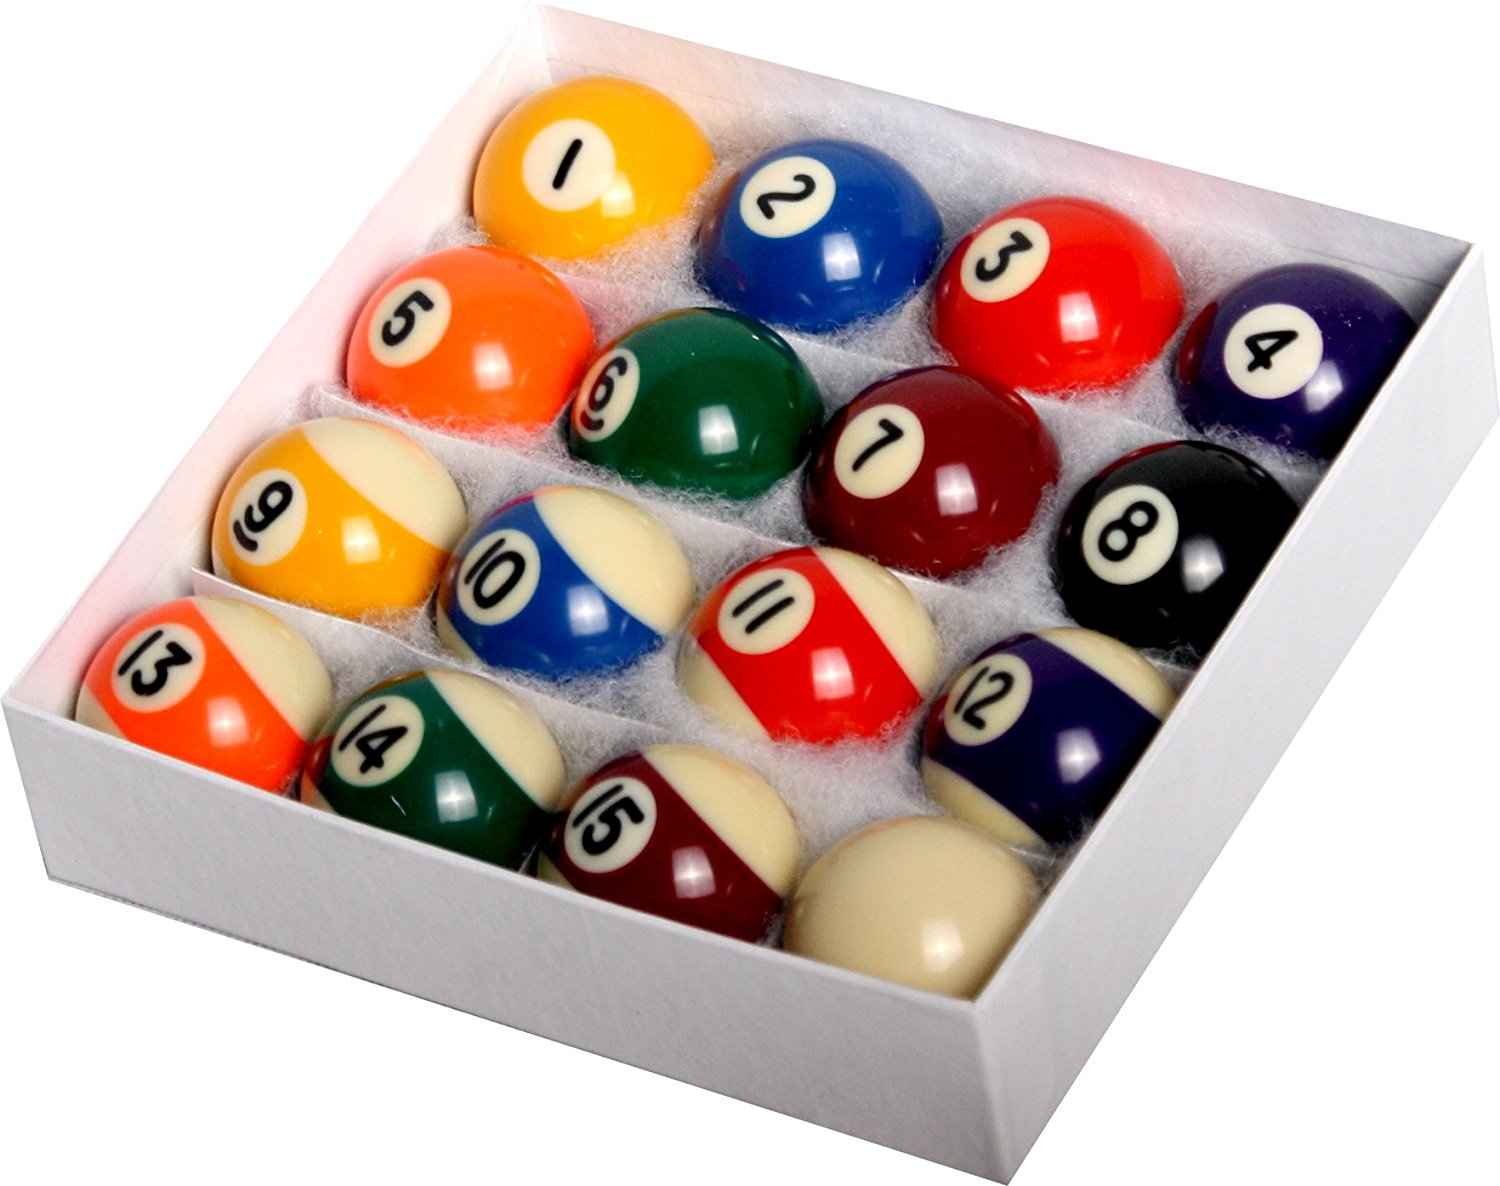 1500x1186 Empire Usa Mini Pool Ball Set, 1.5 Inch, Billiard Balls